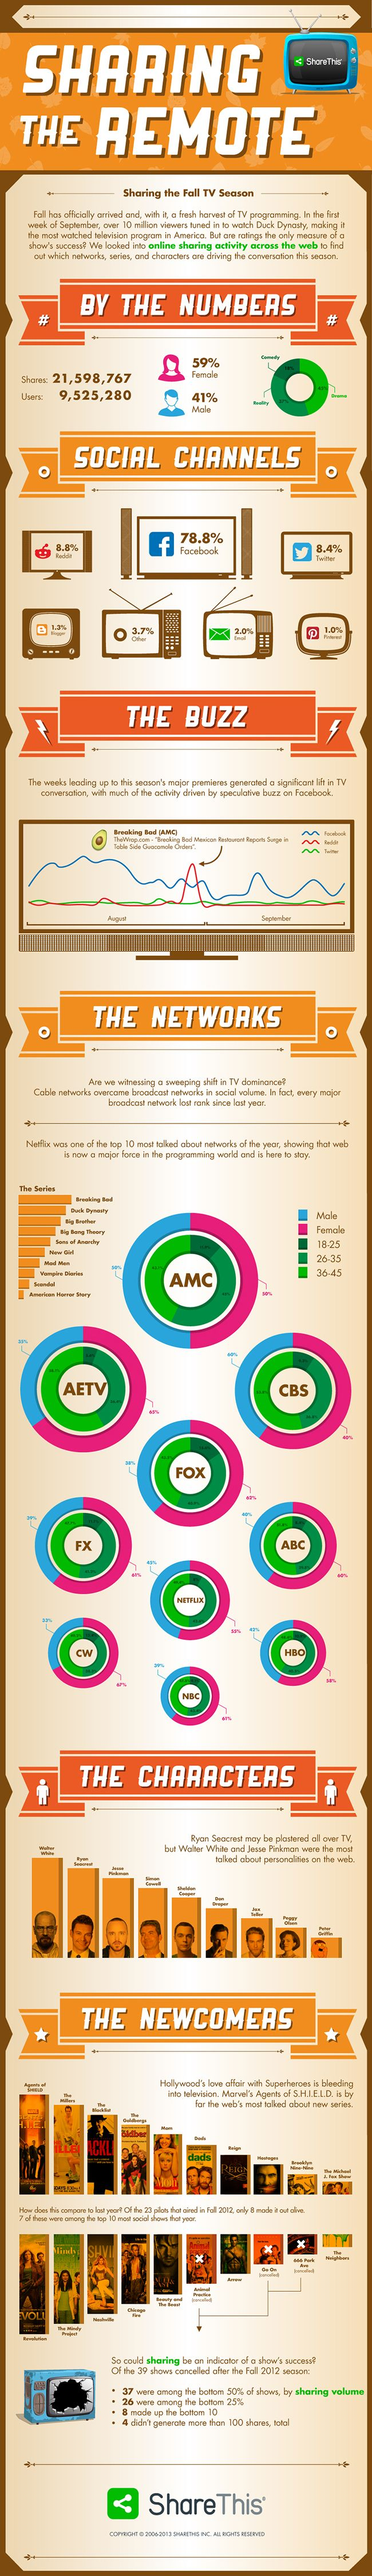 Our newest infographic on Fall TV sharing trends! http://shar.es/KyFFG: Shared Trends, Social Stuff, Fall Tv, Fall Premier, Seasons Tv, Online Social, Newest Infographic, Social Activities, Seasons Finals